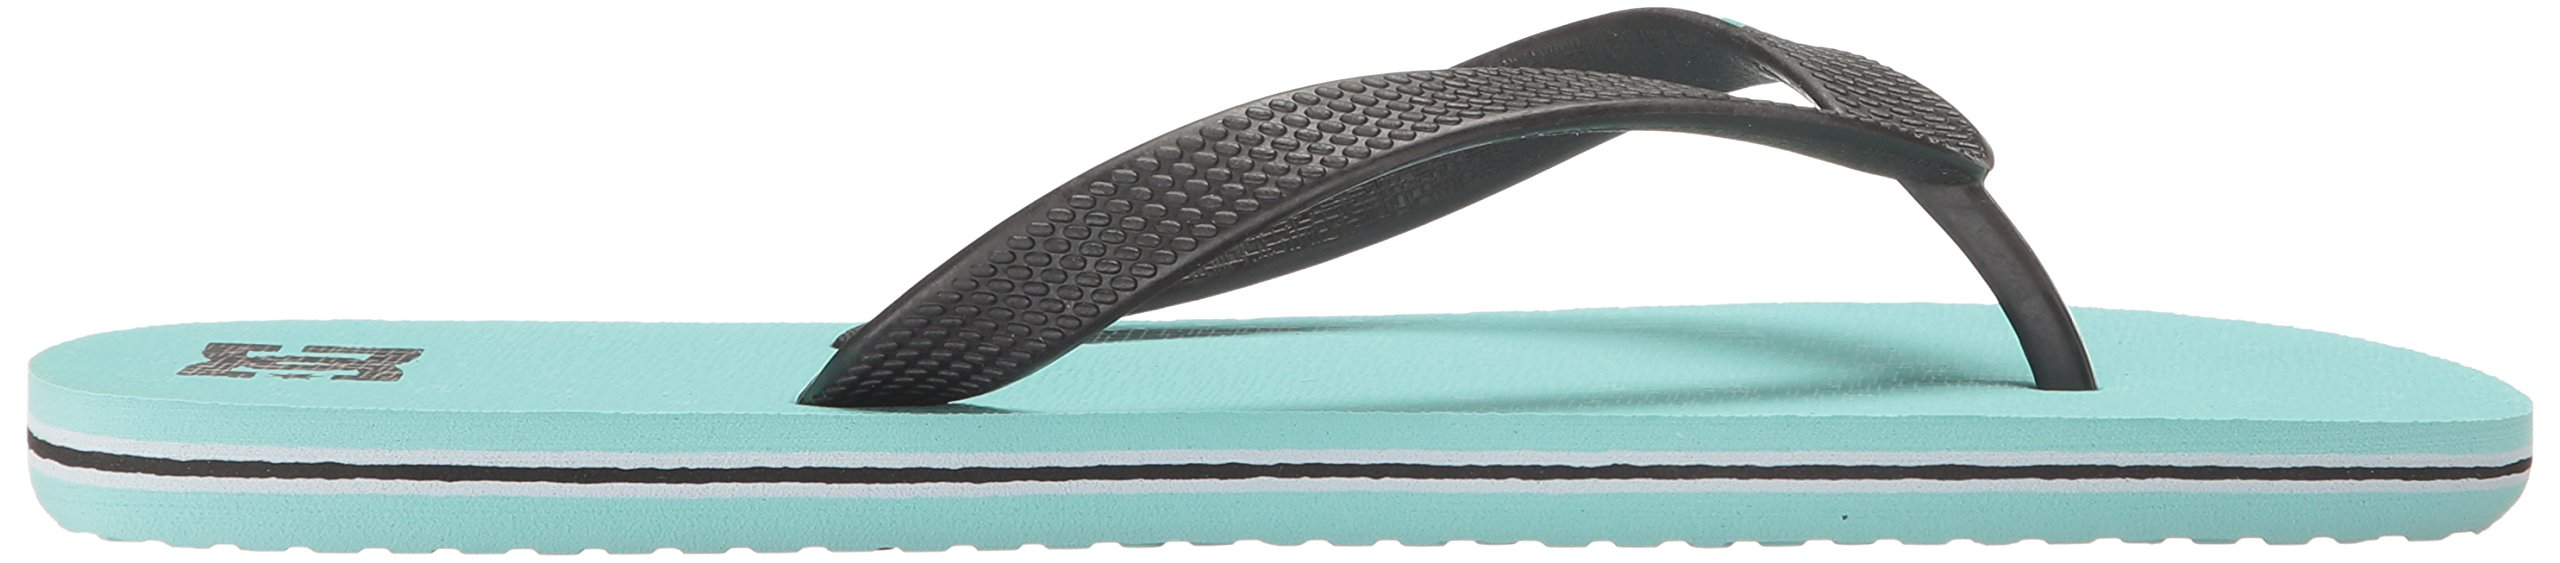 DC Girls' Spray Flip Flop, Turquoise, 6 M US Little Kid by DC (Image #7)